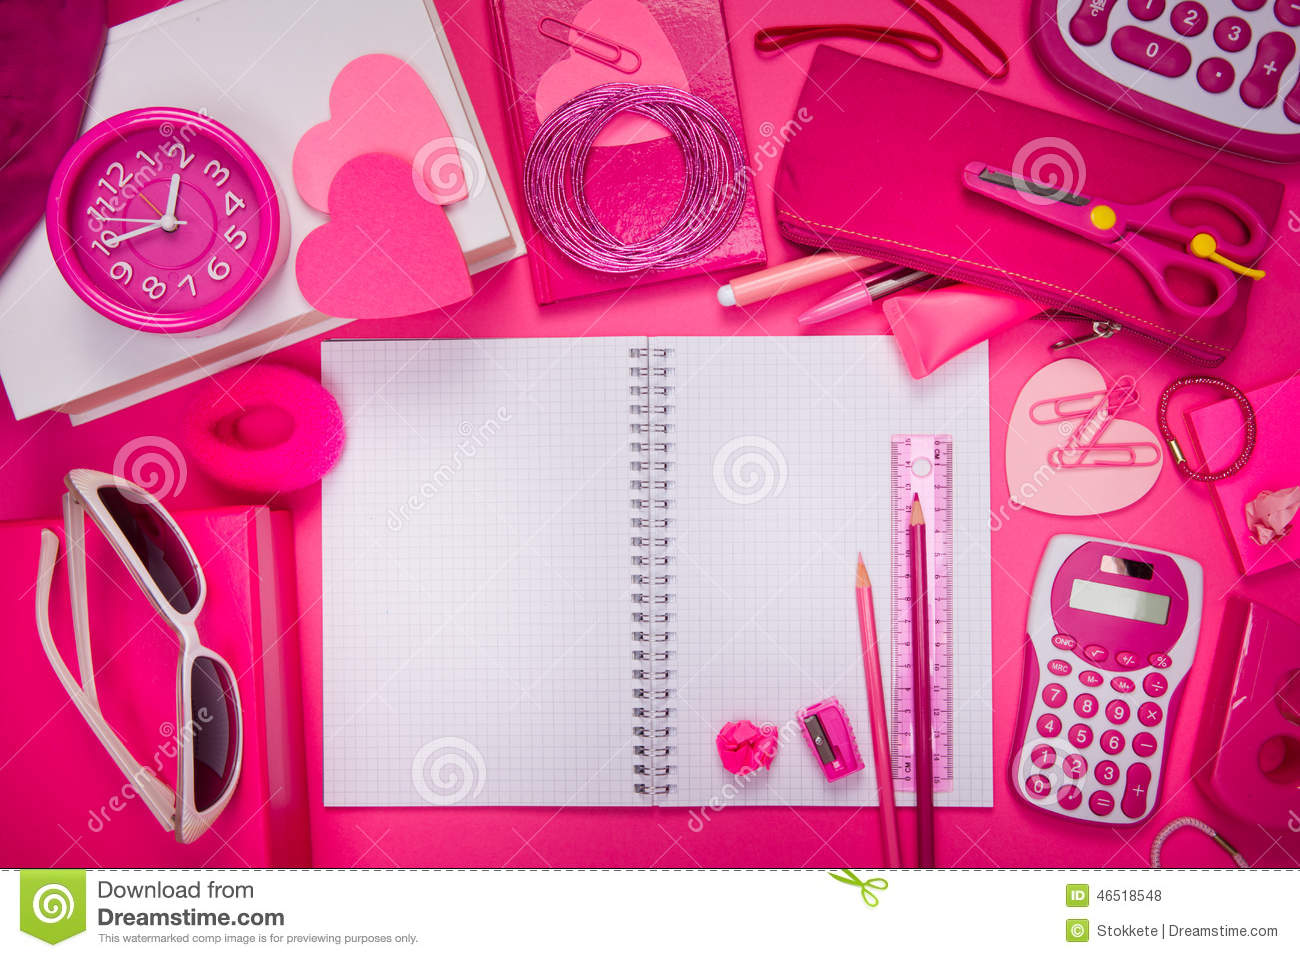 Princess Bedroom Ideas Girly Pink Desktop And Stationery Stock Photo Image